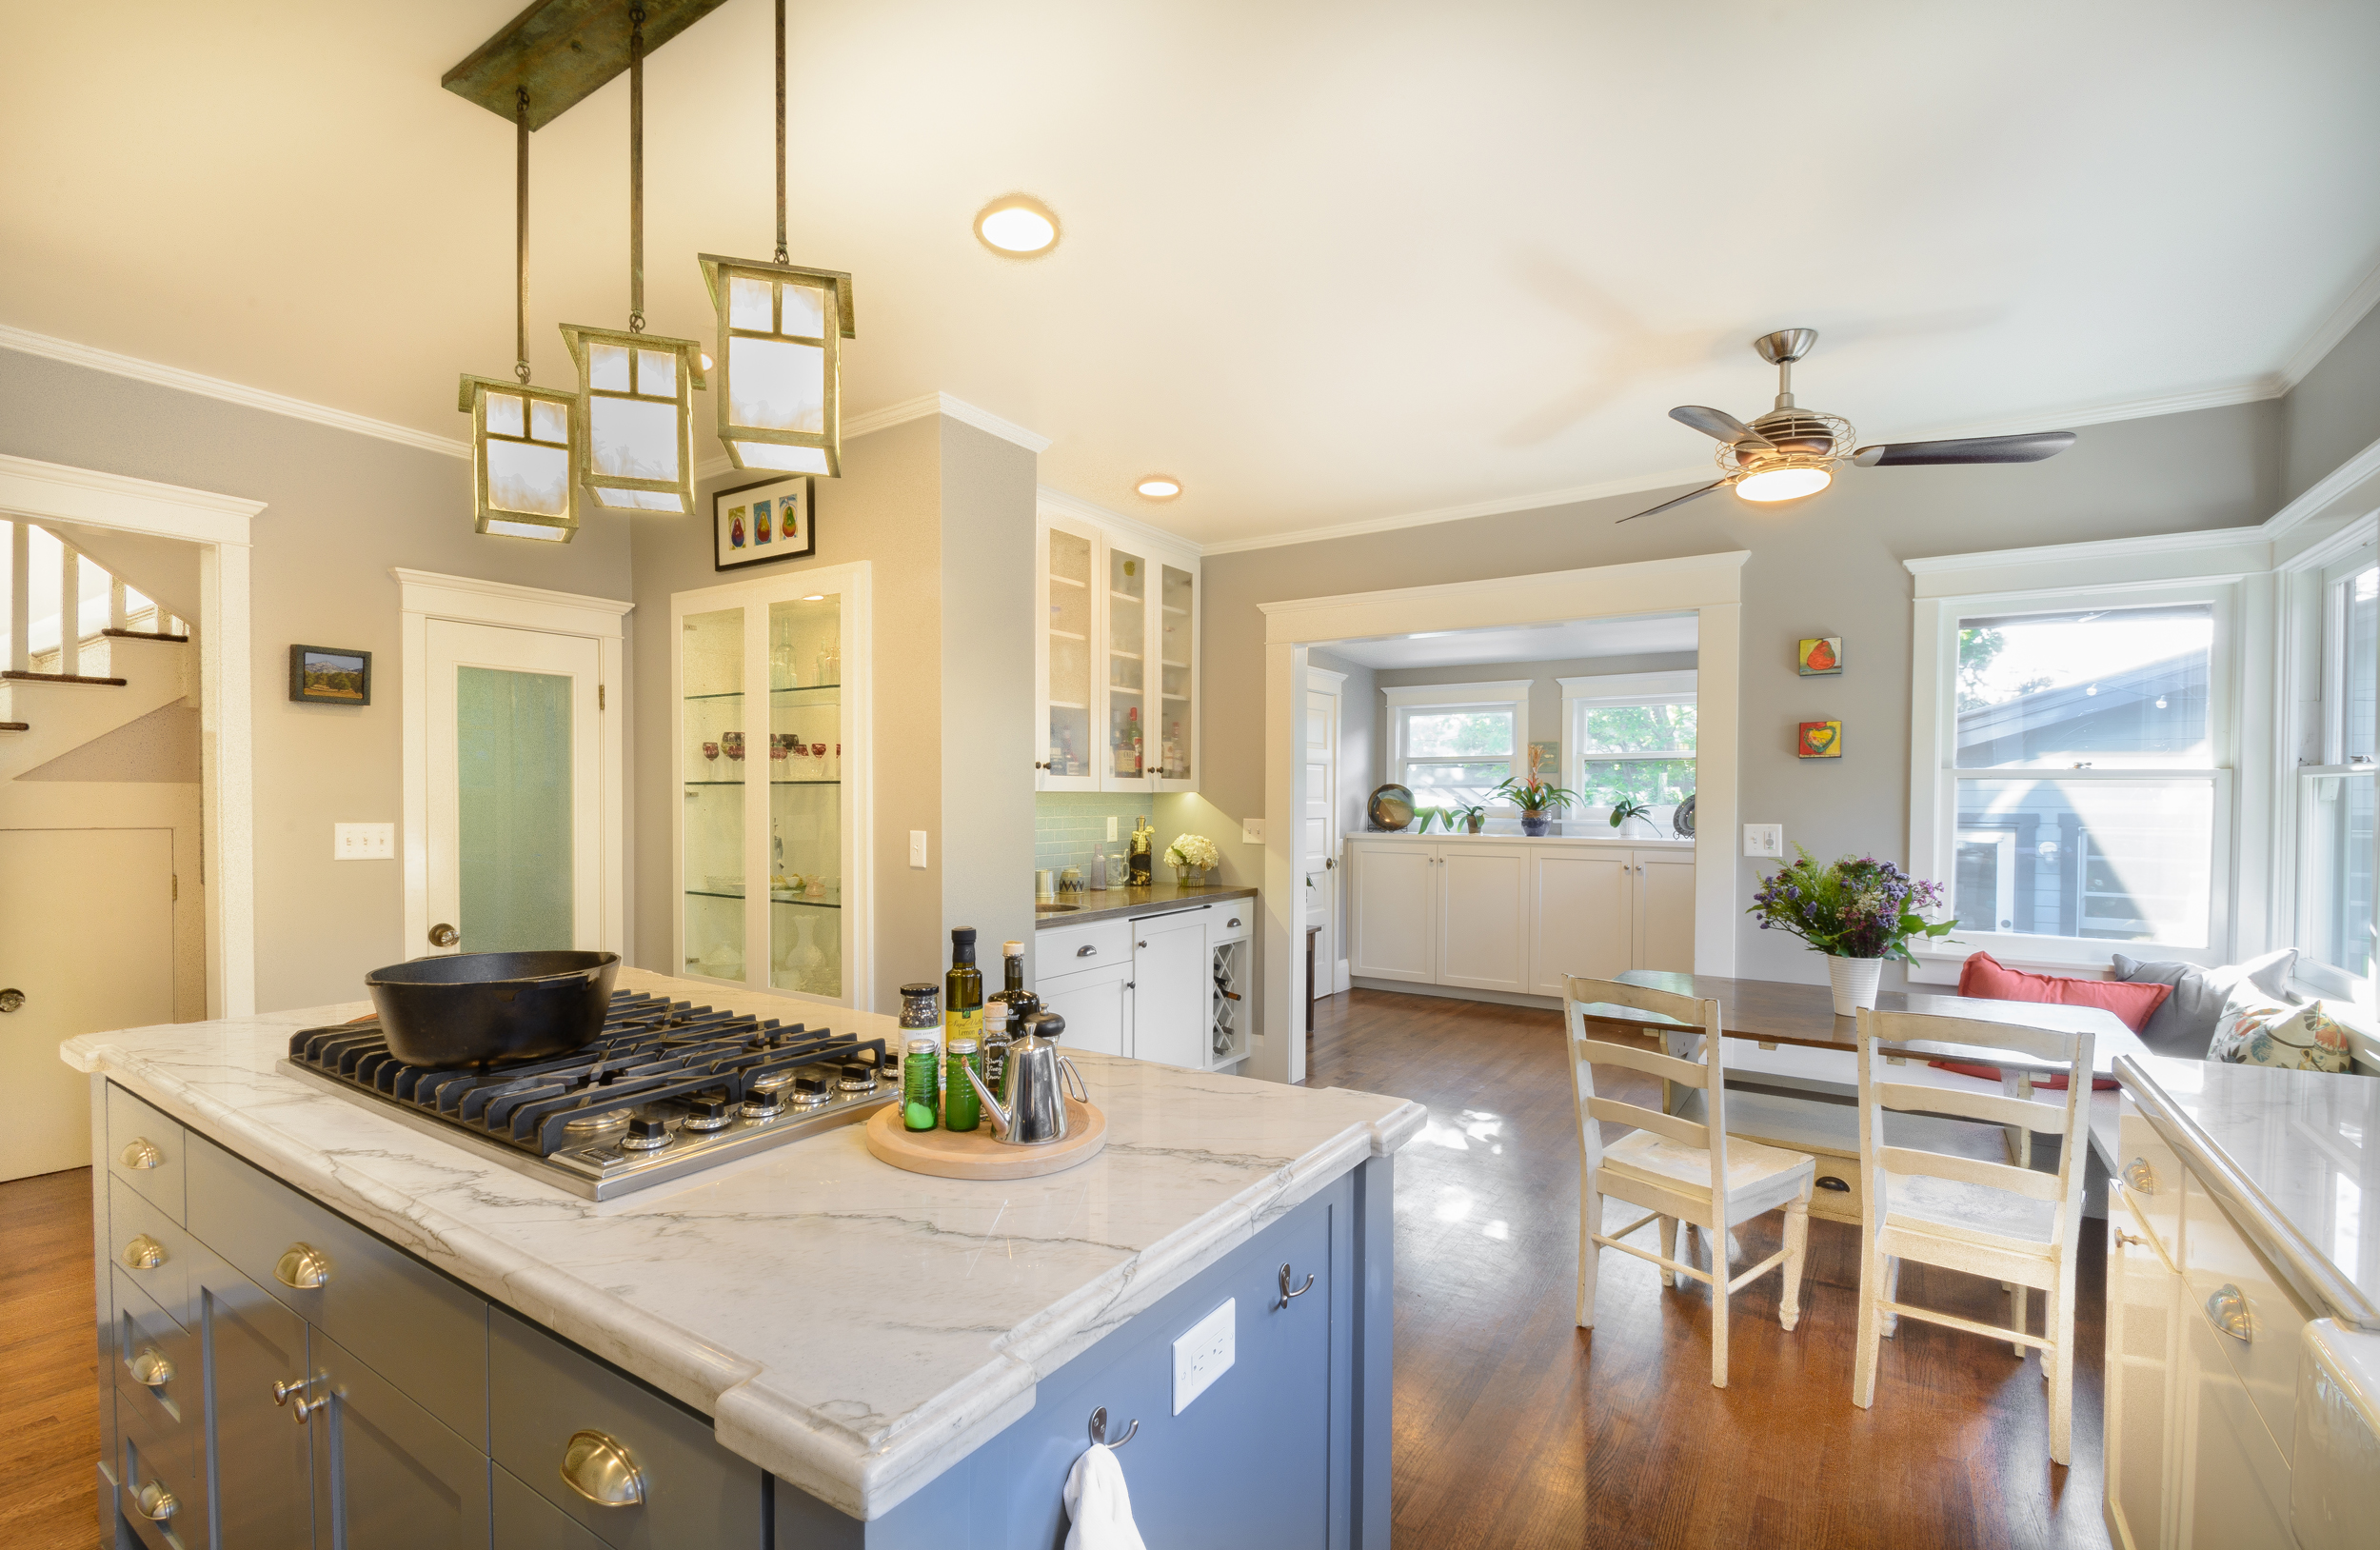 This craftsman style kitchen features a neutral color palette, wood floor, craftsman light fixtures, glass door display pantry cabinets, a breakfast nook and a bar area